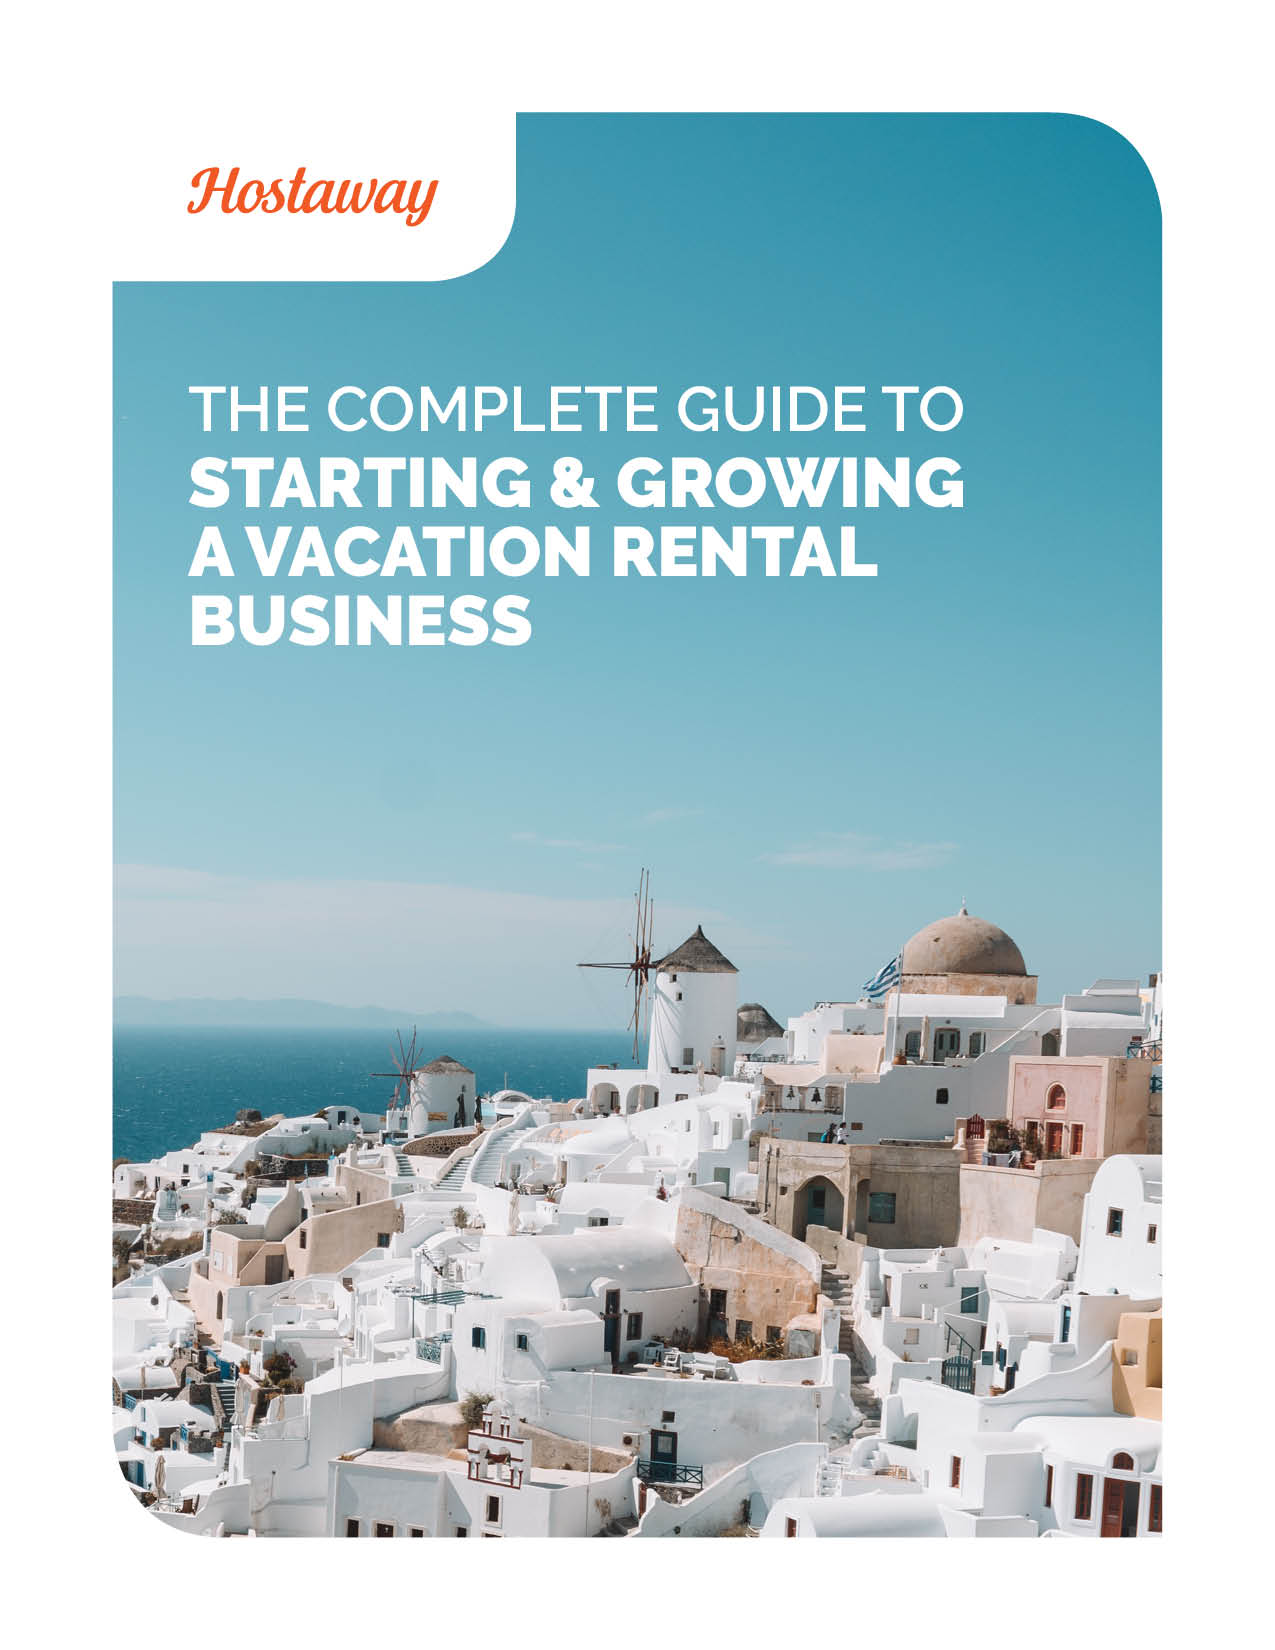 Cover of e-book: The complete guide to starting and growing your vacation rental business.